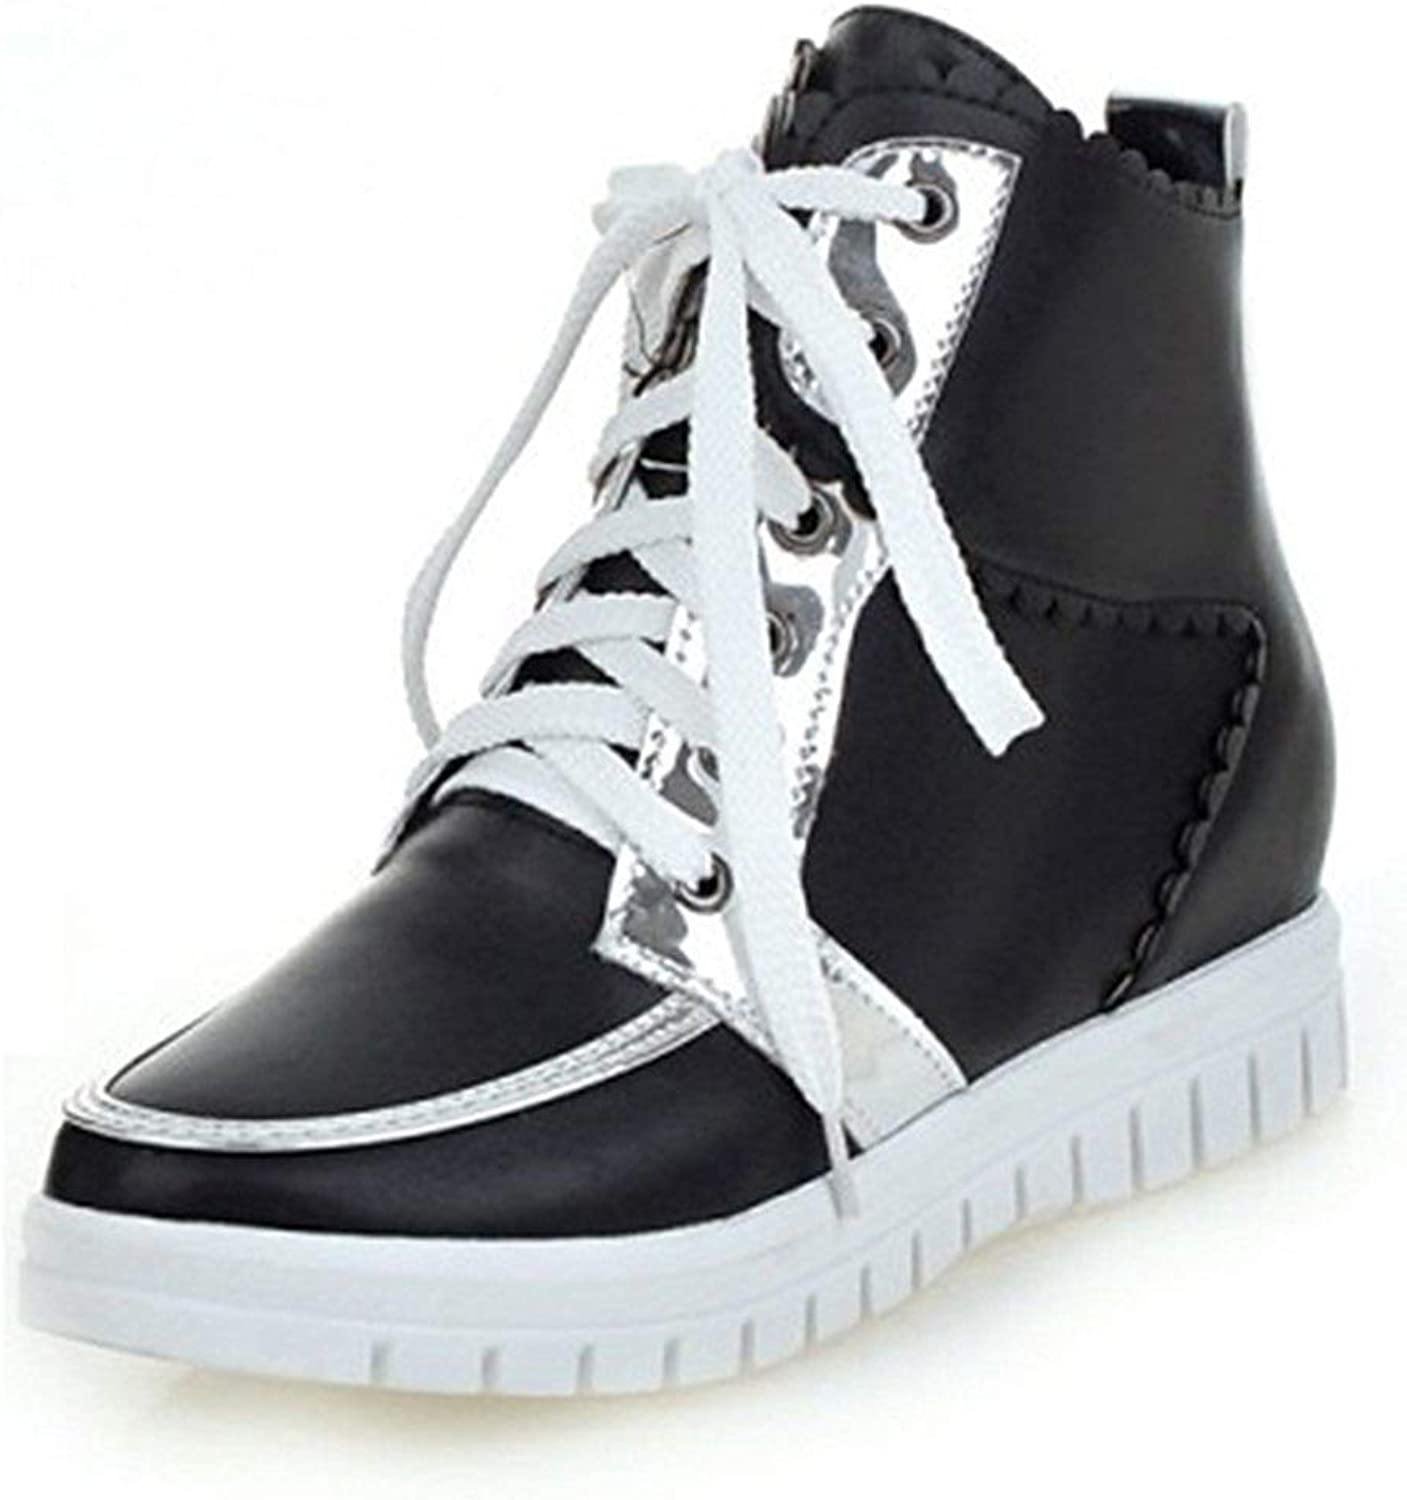 Gcanwea Women's Casual High Top Lace-up Ankle Booties Heighten Inside Platform Sneakers Stylish Leather Comfortable Fashion Girls Attractive Winter Warm Non-Slip Black 4 M US Sneakers